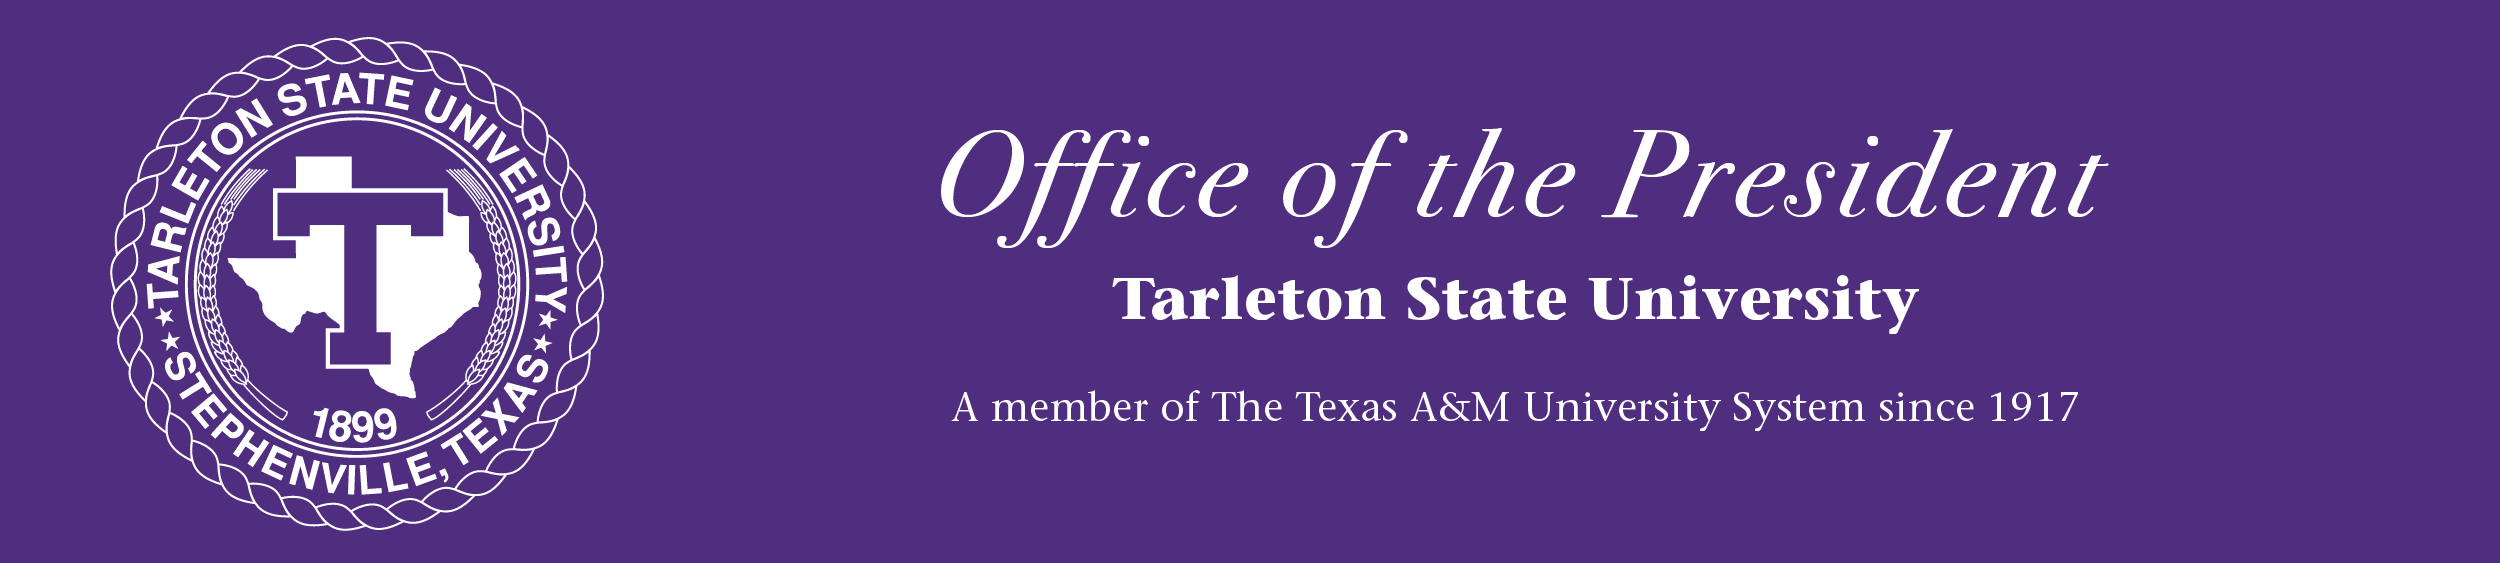 From the Office of the President of Tarleton State University, a member of the Texas A&M University System since 1917.